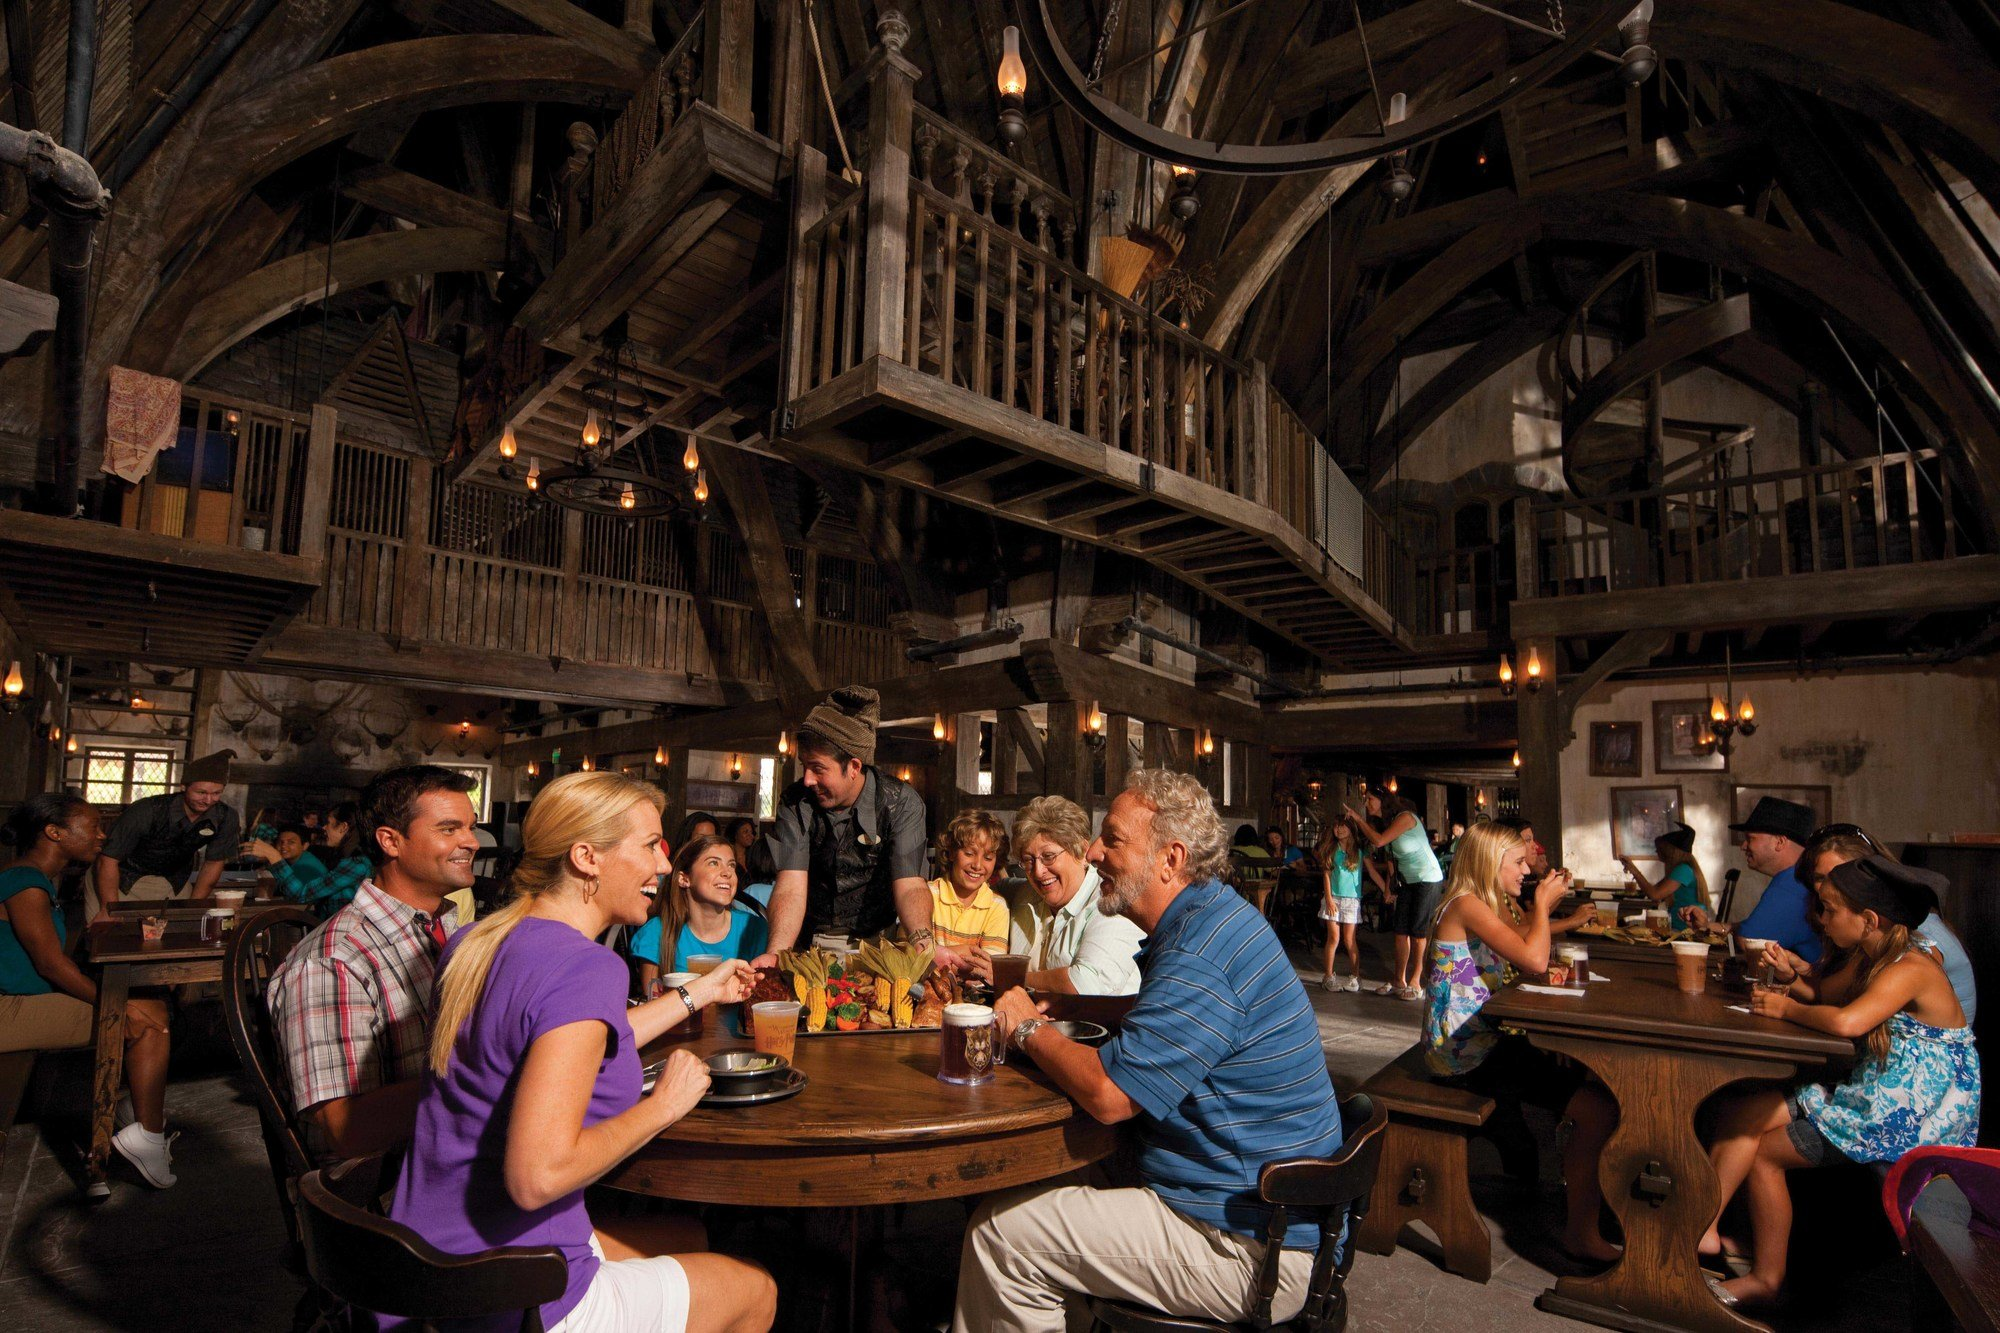 Dining at the Three Broomsticks is a must for Potterheads at Universal Studios Hollywood